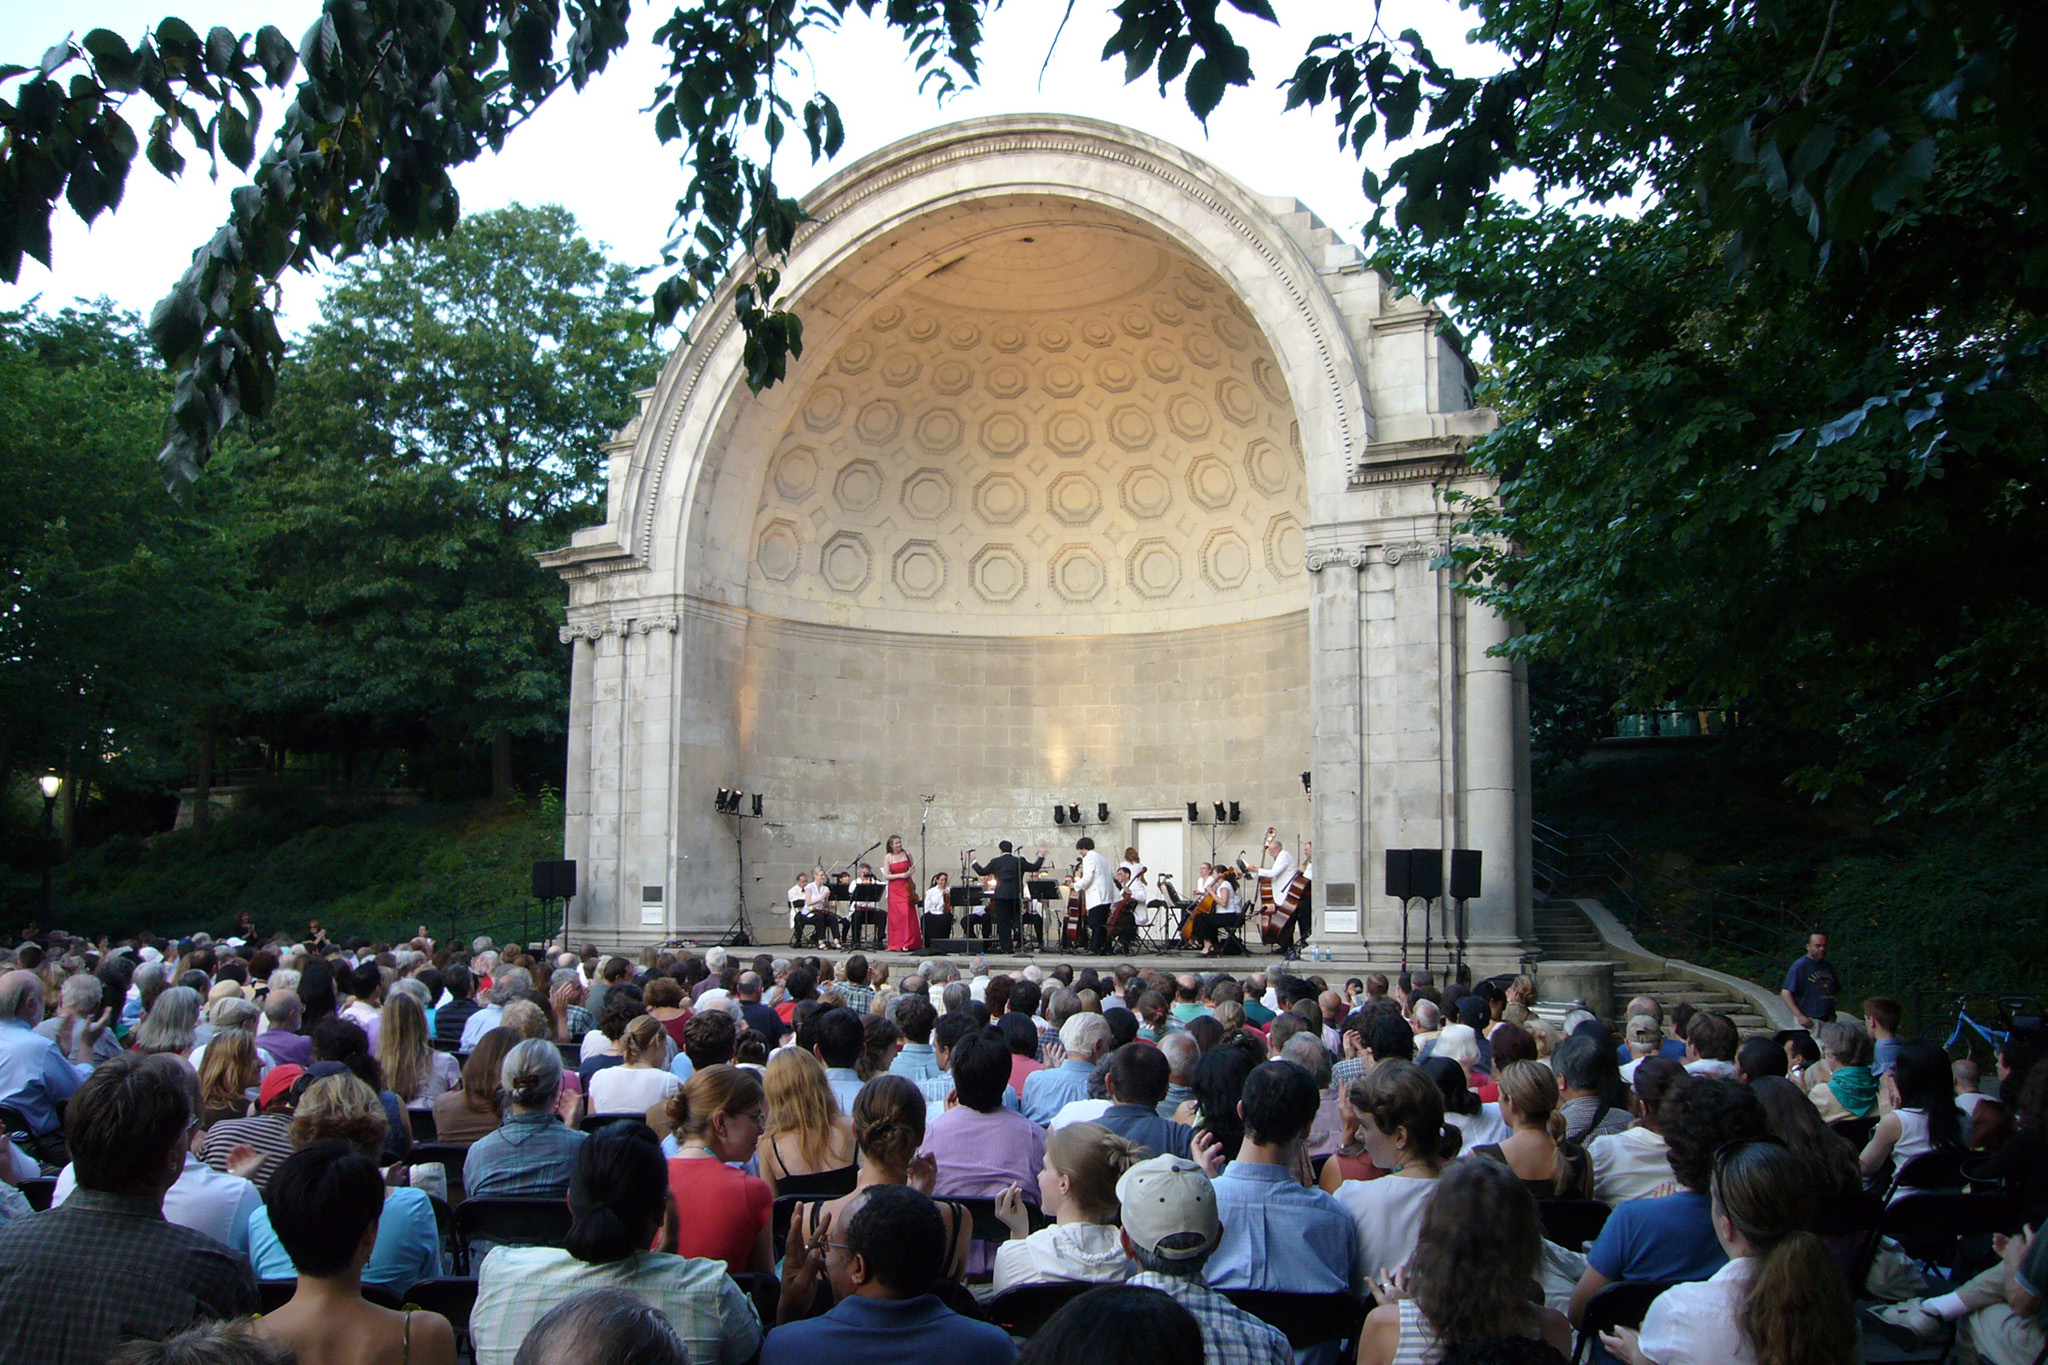 Relax to chamber music in Central Park